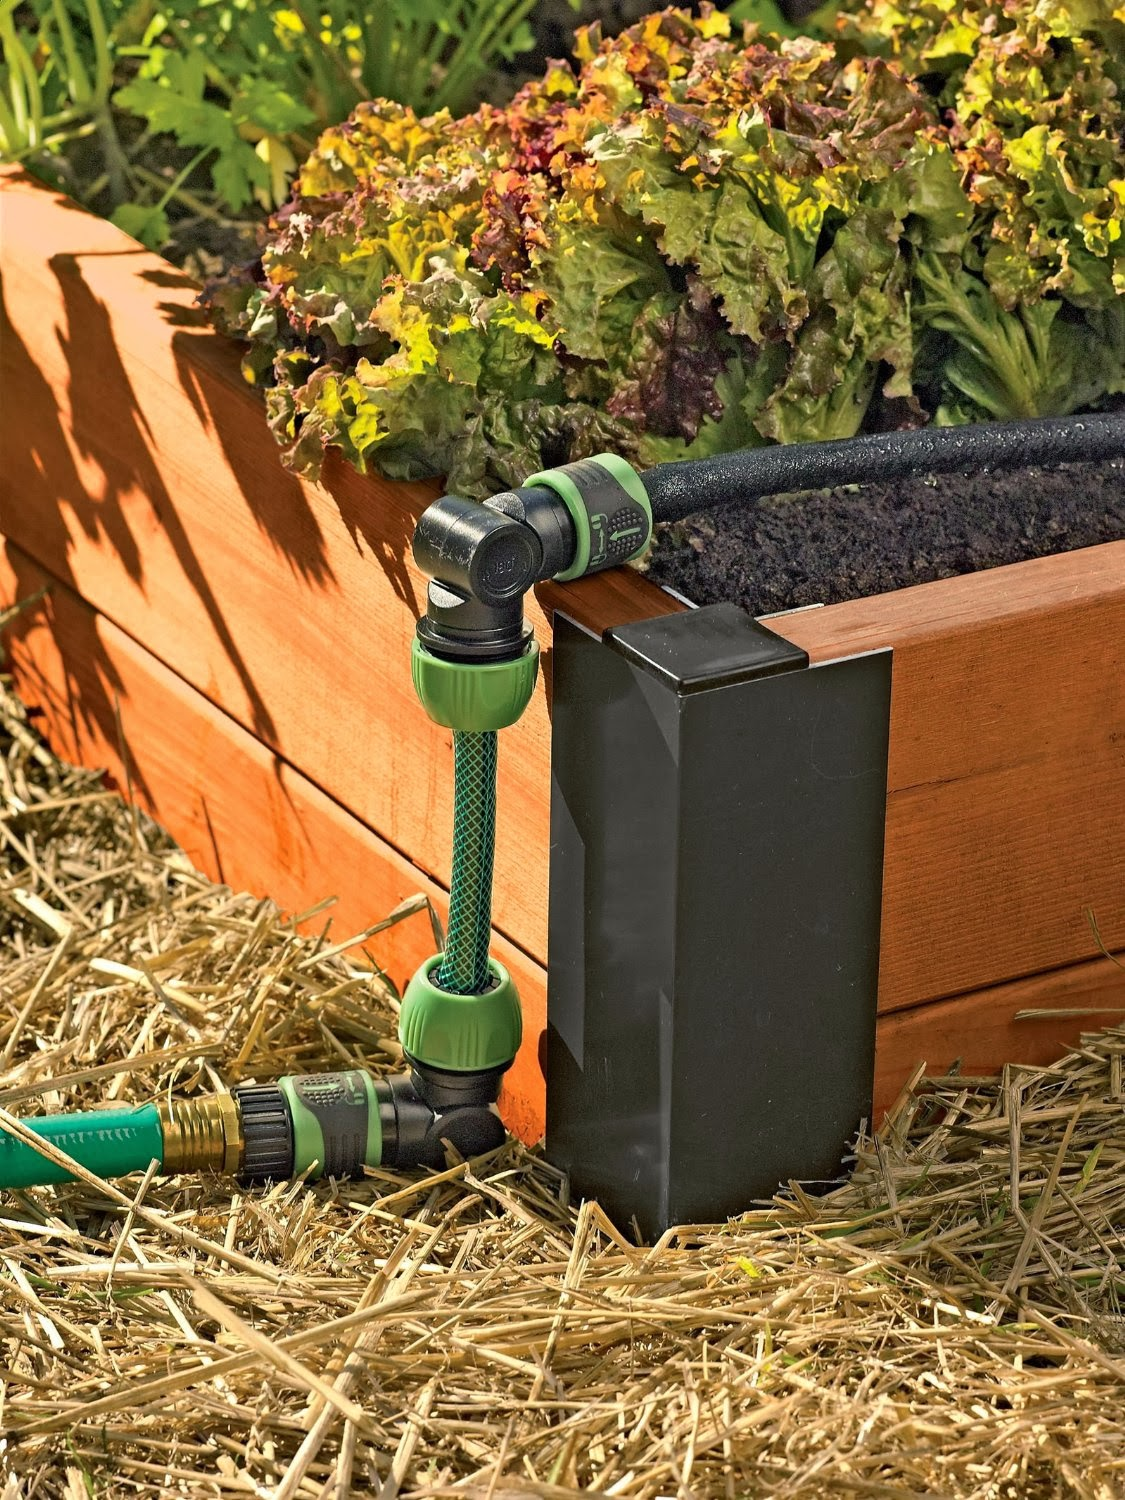 alternative green world raised bed snip n drip soaker system